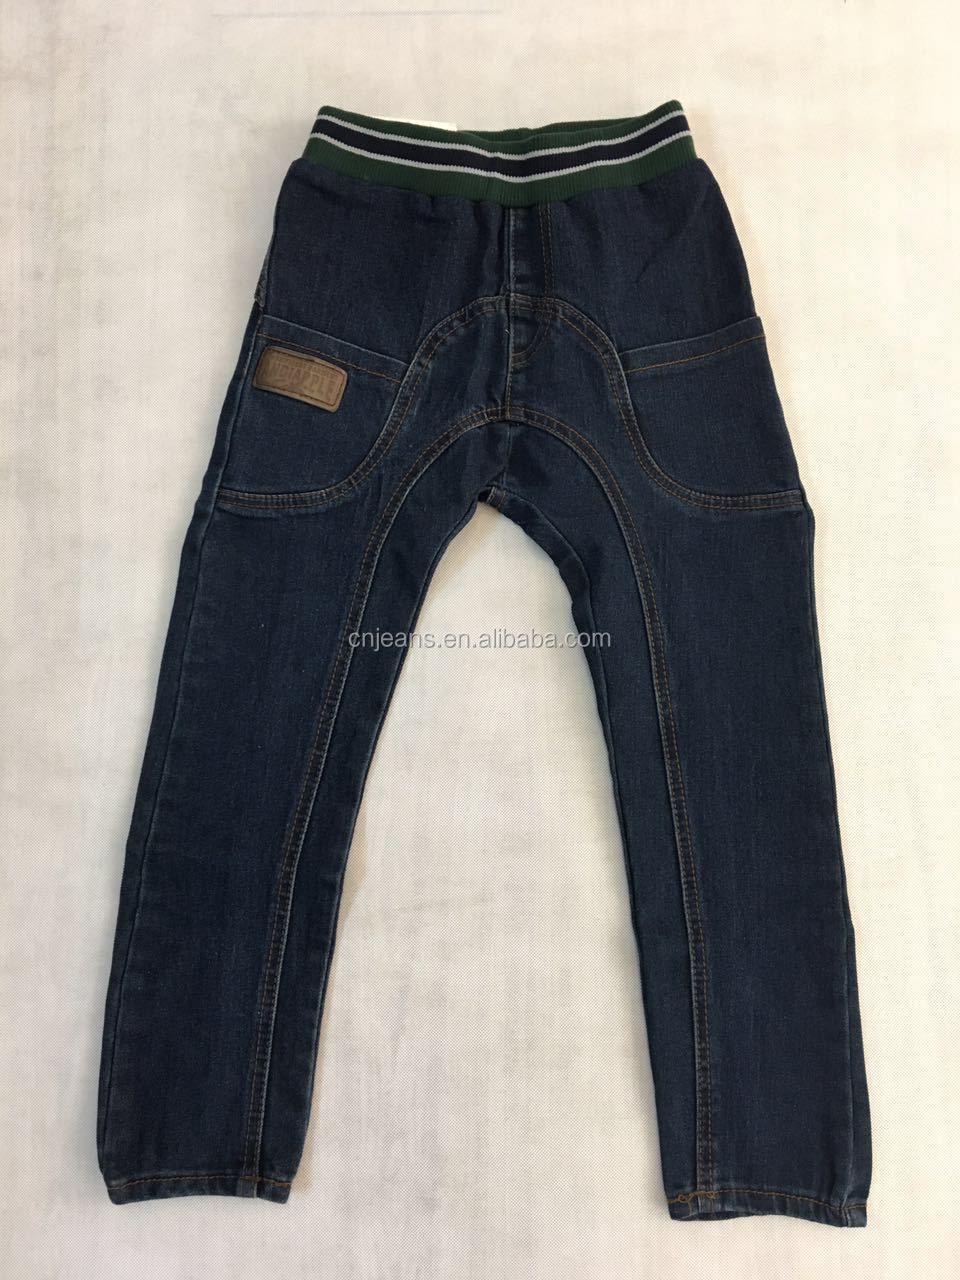 GZY E lastic Cord New Boy Jeans Active Stock High Quality